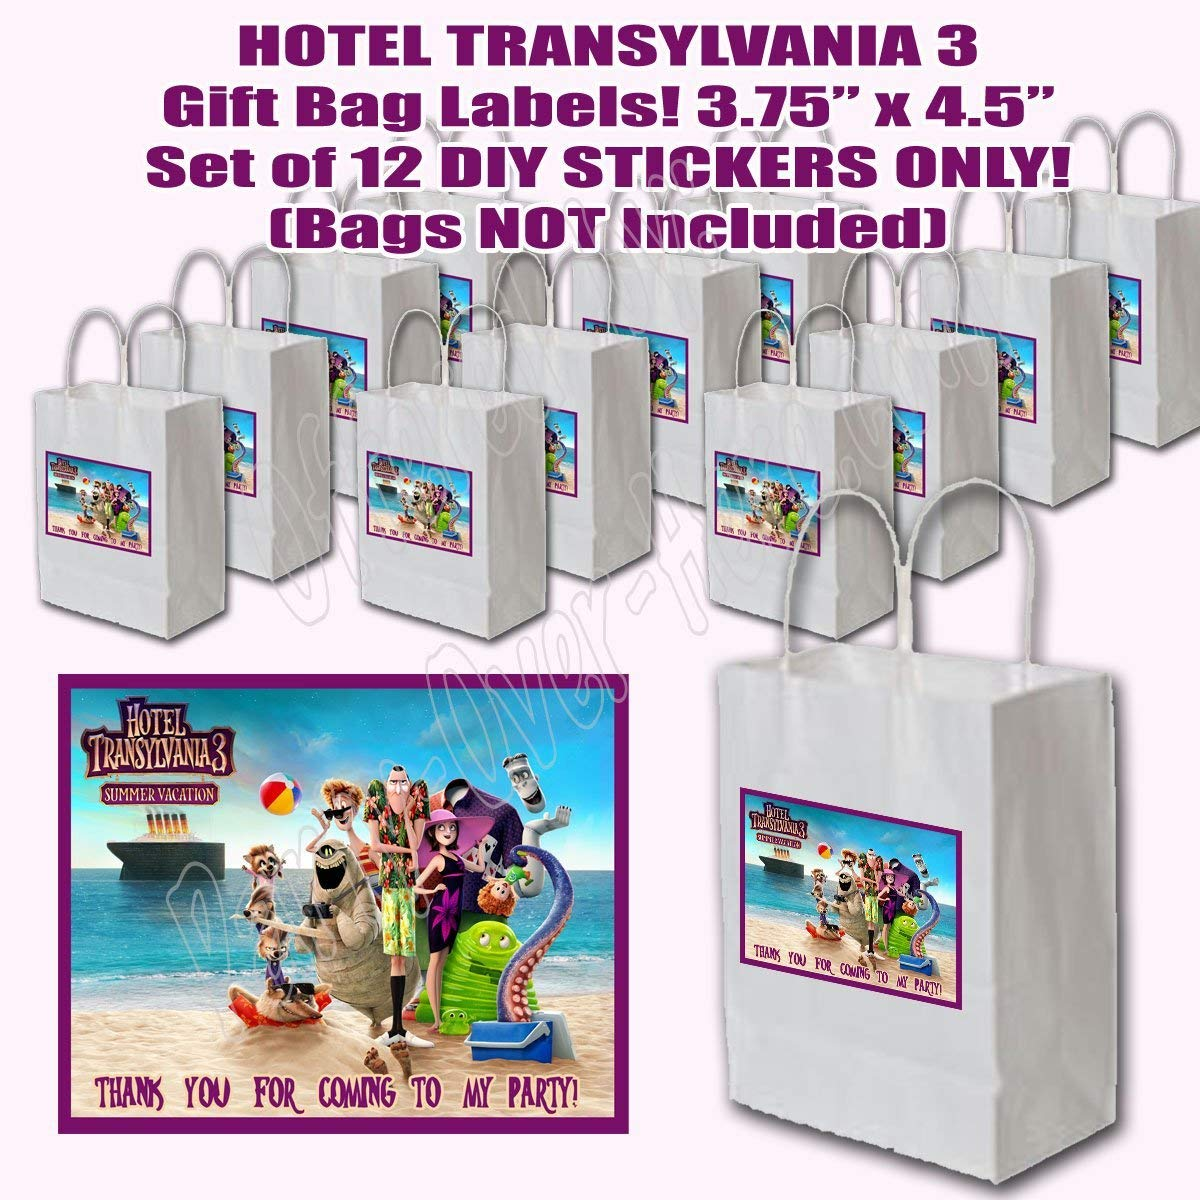 Hotel Transylvania 3 Stickers ONLY Party Favors Supplies Decorations Gift Bag Label Stickers [Bags NOT Included] 3.75'' x 4.75'' -12 pcs, Summer Vacation